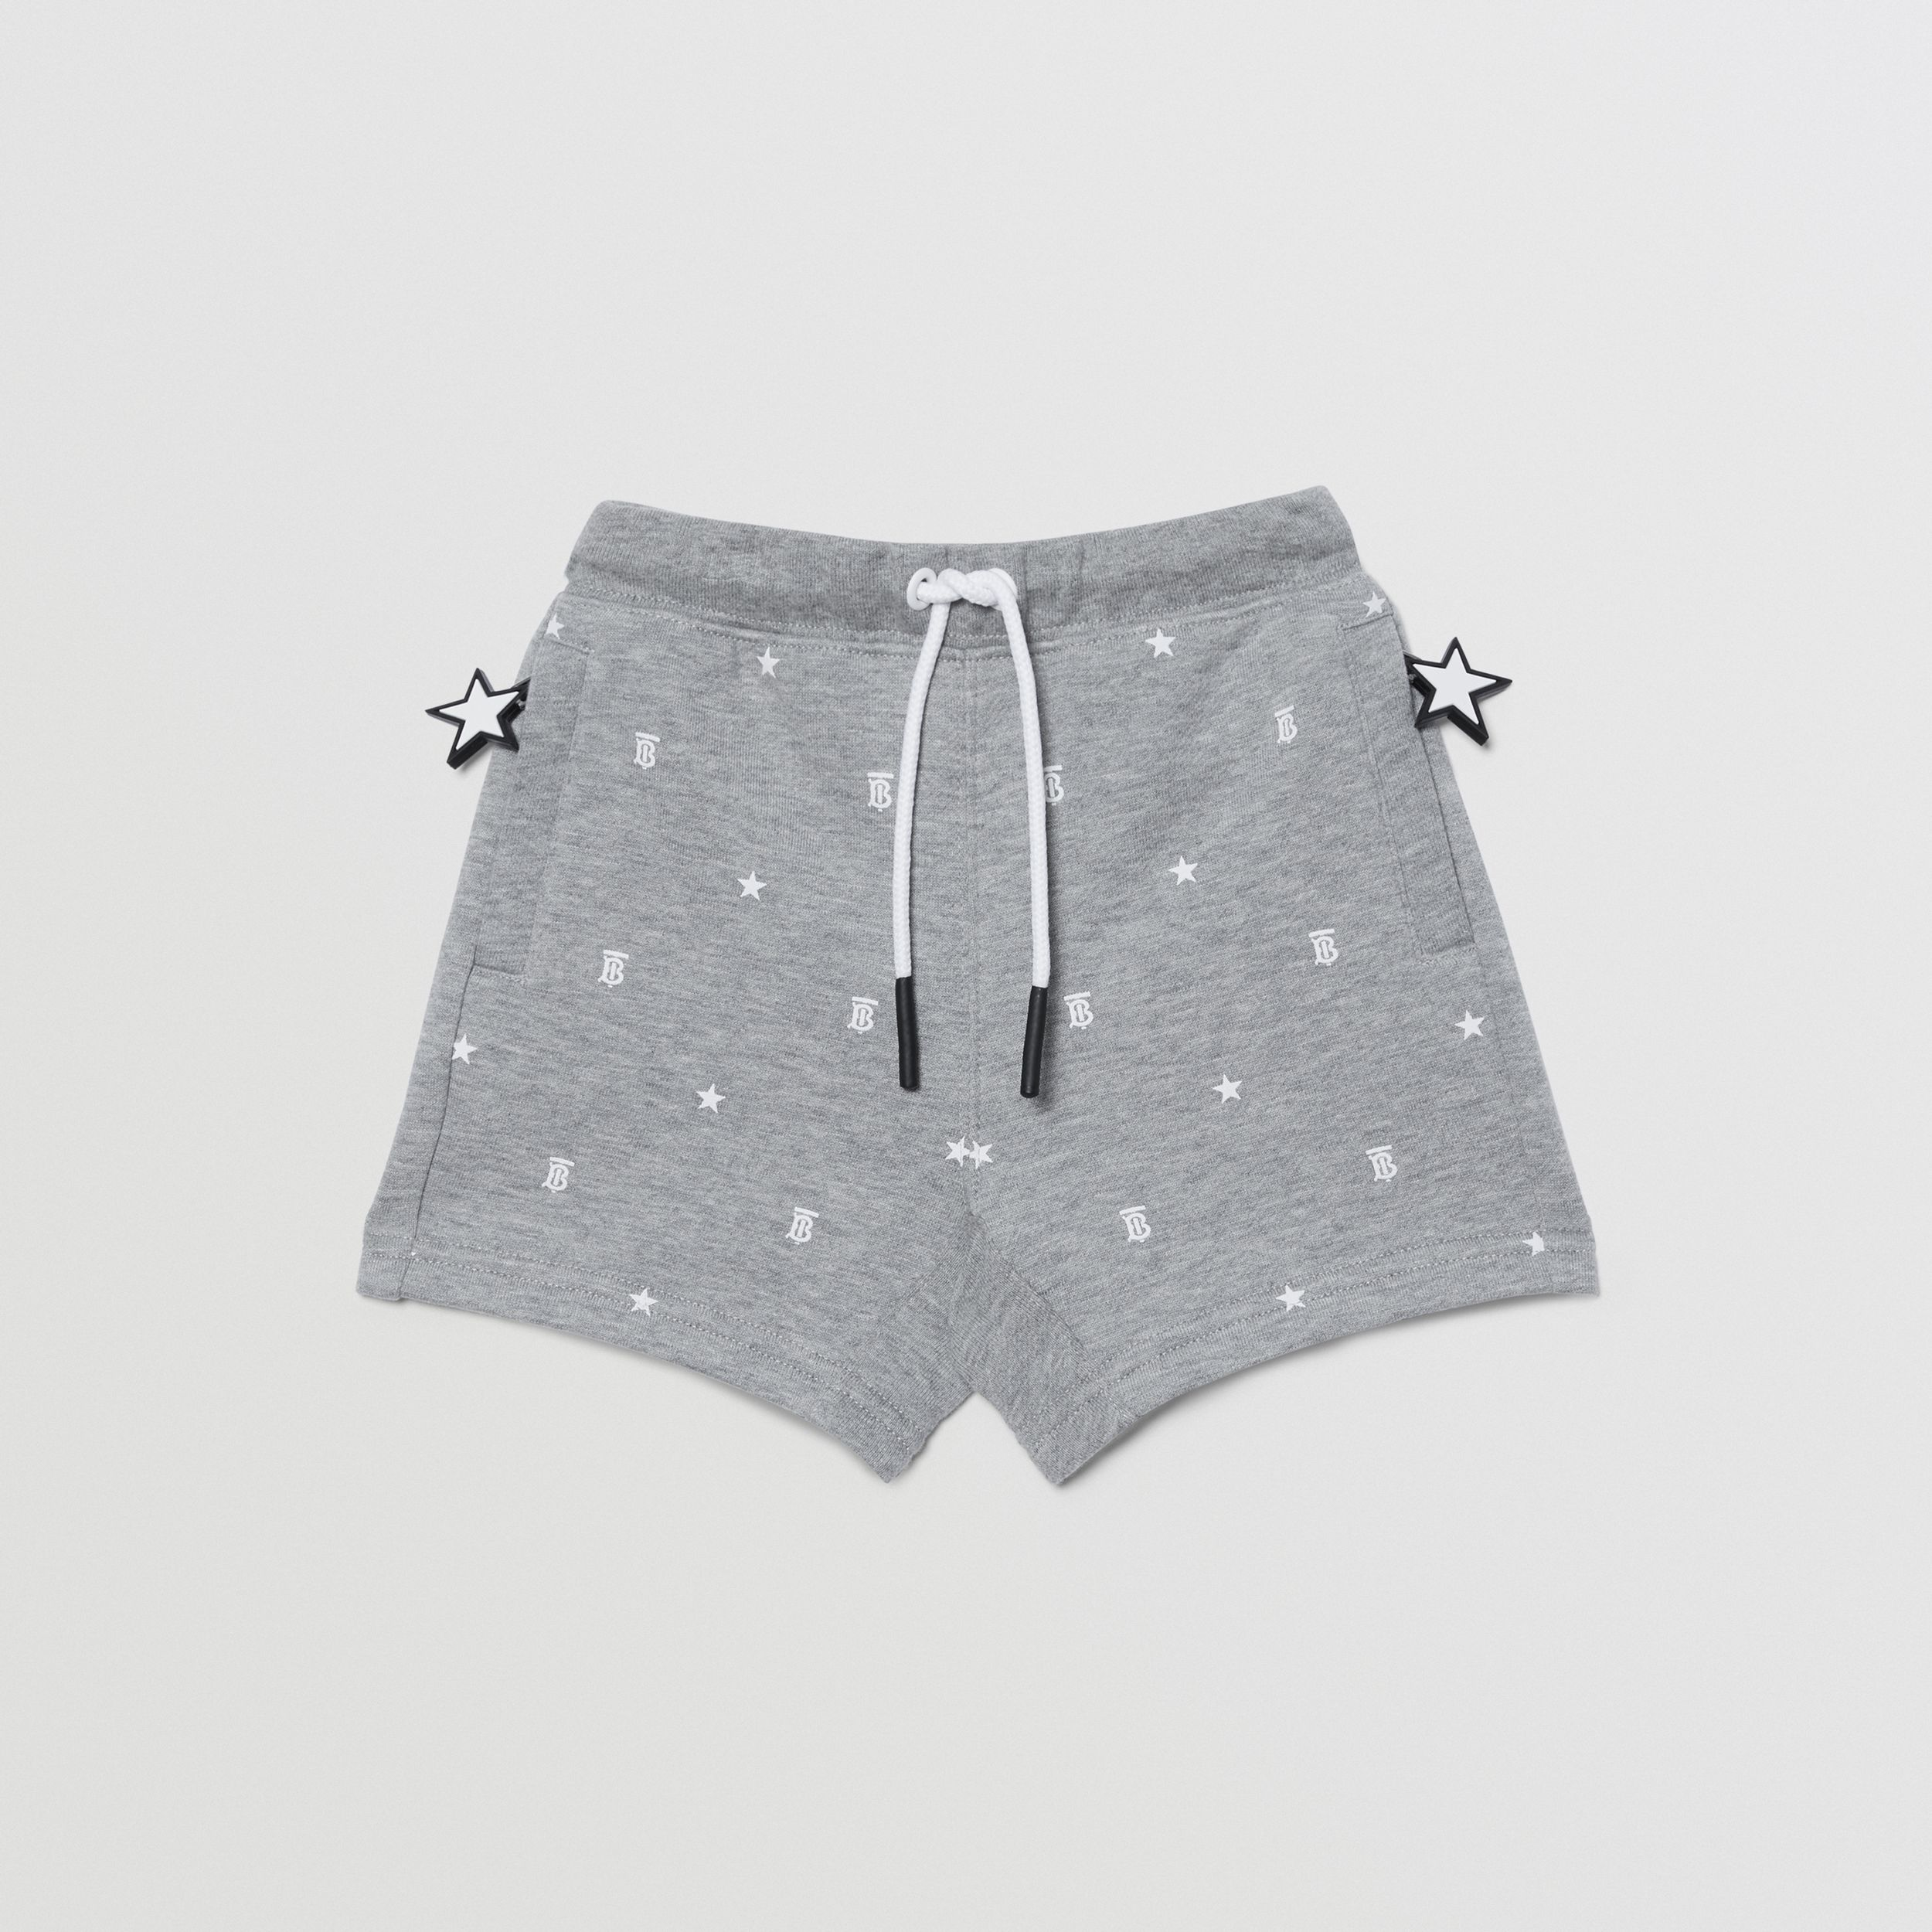 Star and Monogram Motif Cotton Shorts in Grey - Children | Burberry United Kingdom - 1